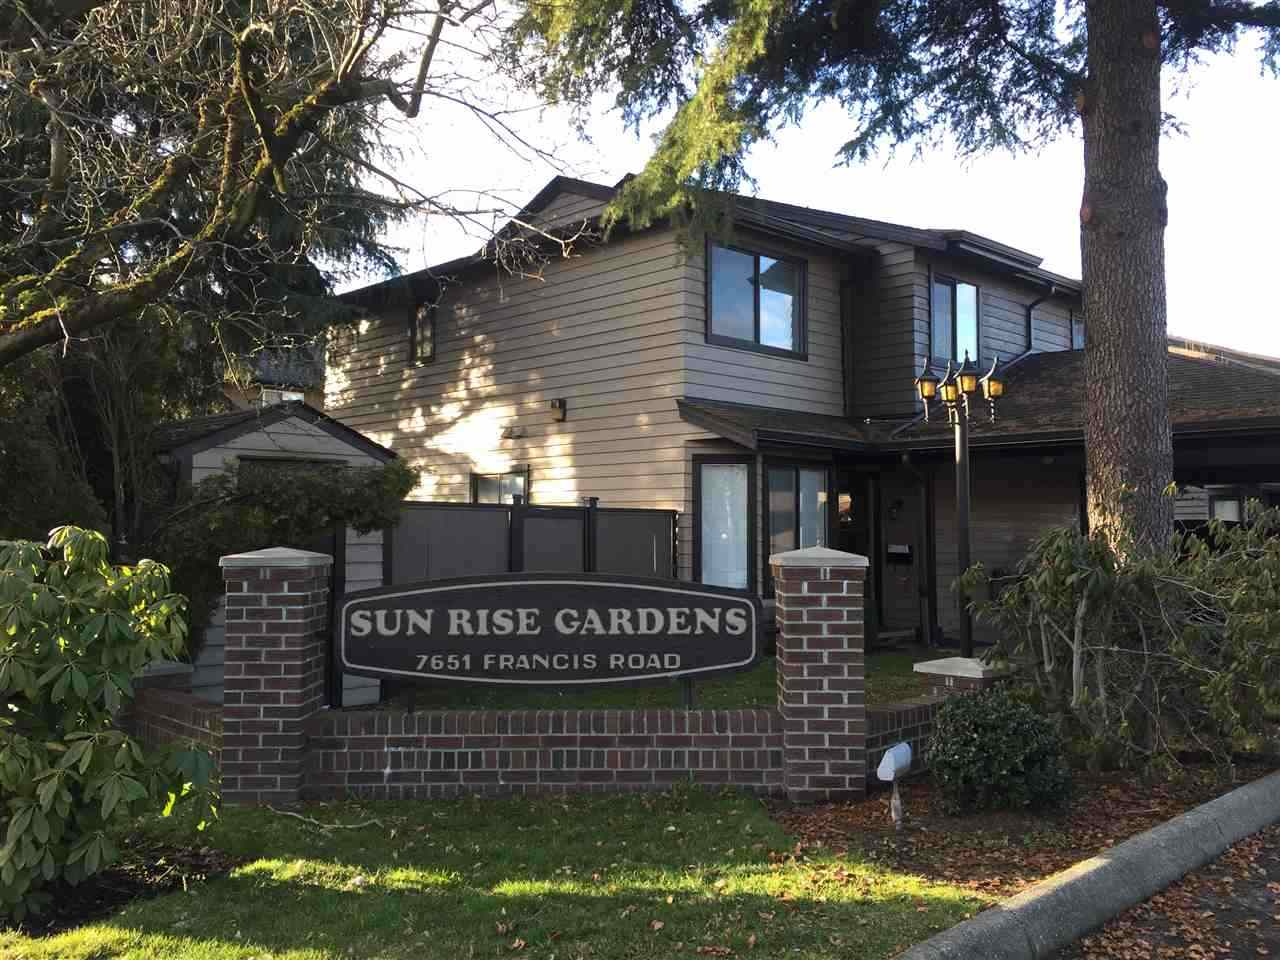 Welcome to Sunrise Gardens, a well run complex near Francis & No.3 Rd. Two-level townhouse, corner unit with N/E/S exposures. 1,334 sq ft, 3 bdrm, 2.5 baths and 2 parking spots. Immaculate & extensive renovations include: Brand new kitchen with stunning cabinets, granite counter-tops and stainless steel appliances. High performance laminate floor both on main and upper floor. Tastefully designed bathrooms. New spot lights and freshly interior paint with modern color. Living room has sliding door that leads to an extra large south facing and fully fenced backyard. Kitchen with spacious and relaxing eating area. Close to Broadmoor Mall, Community Centre and public transit. Ferris Elementary and Richmond Secondary. Strata fee includes City utilities. Call now and act fast!